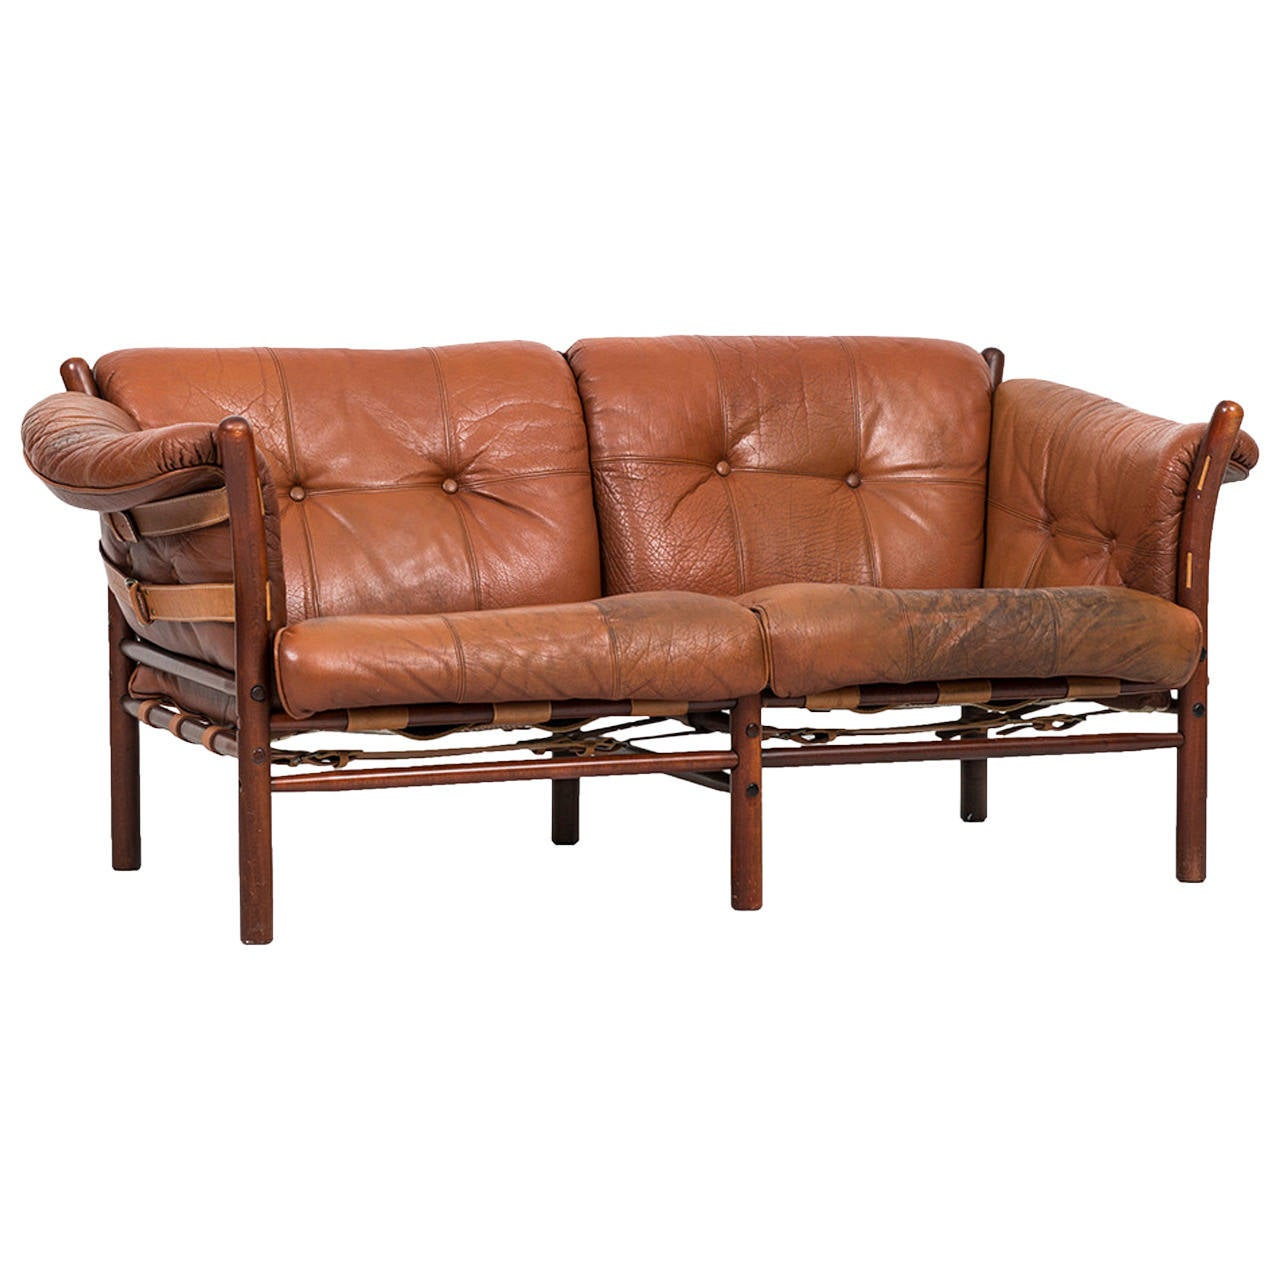 Arne Norell Llona Sofa in Brown Leather by Norell AB in Sweden